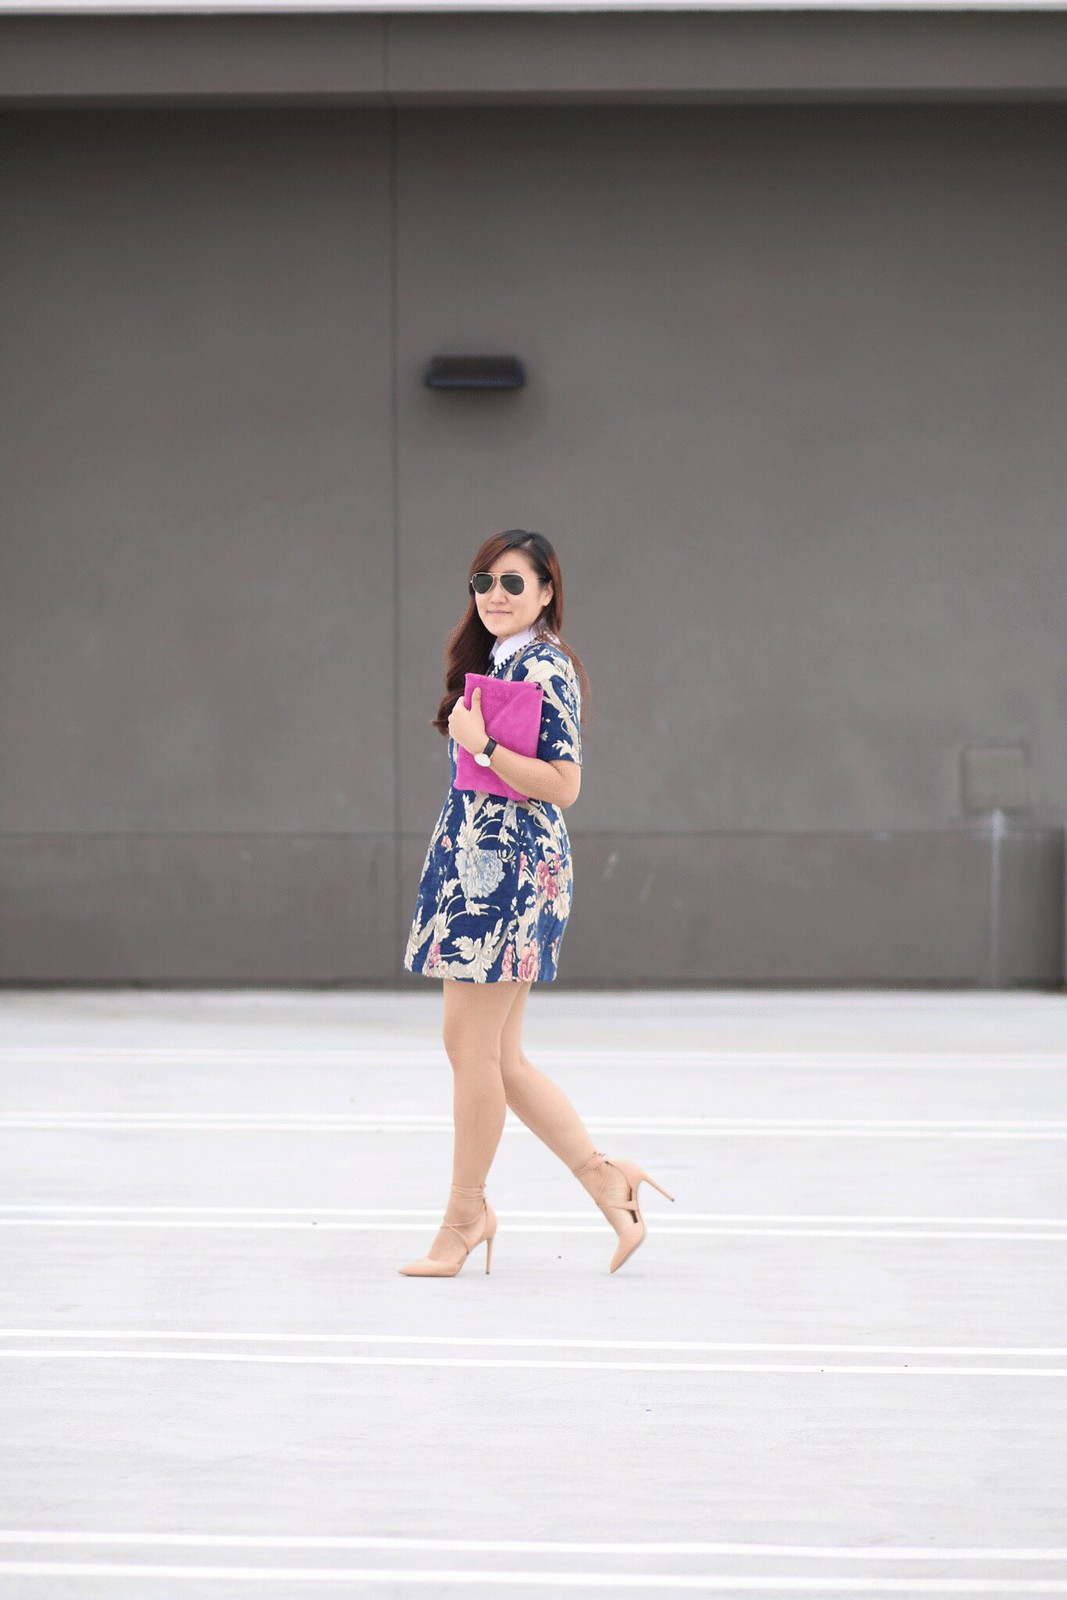 simplyxclassic, style, mom blog, blogger, fashion, style, floral dress, chichwish, asian, korean, lifestyle, orange county, blog, steve madden nude heels, pink clutch, fall outfit, southern california,